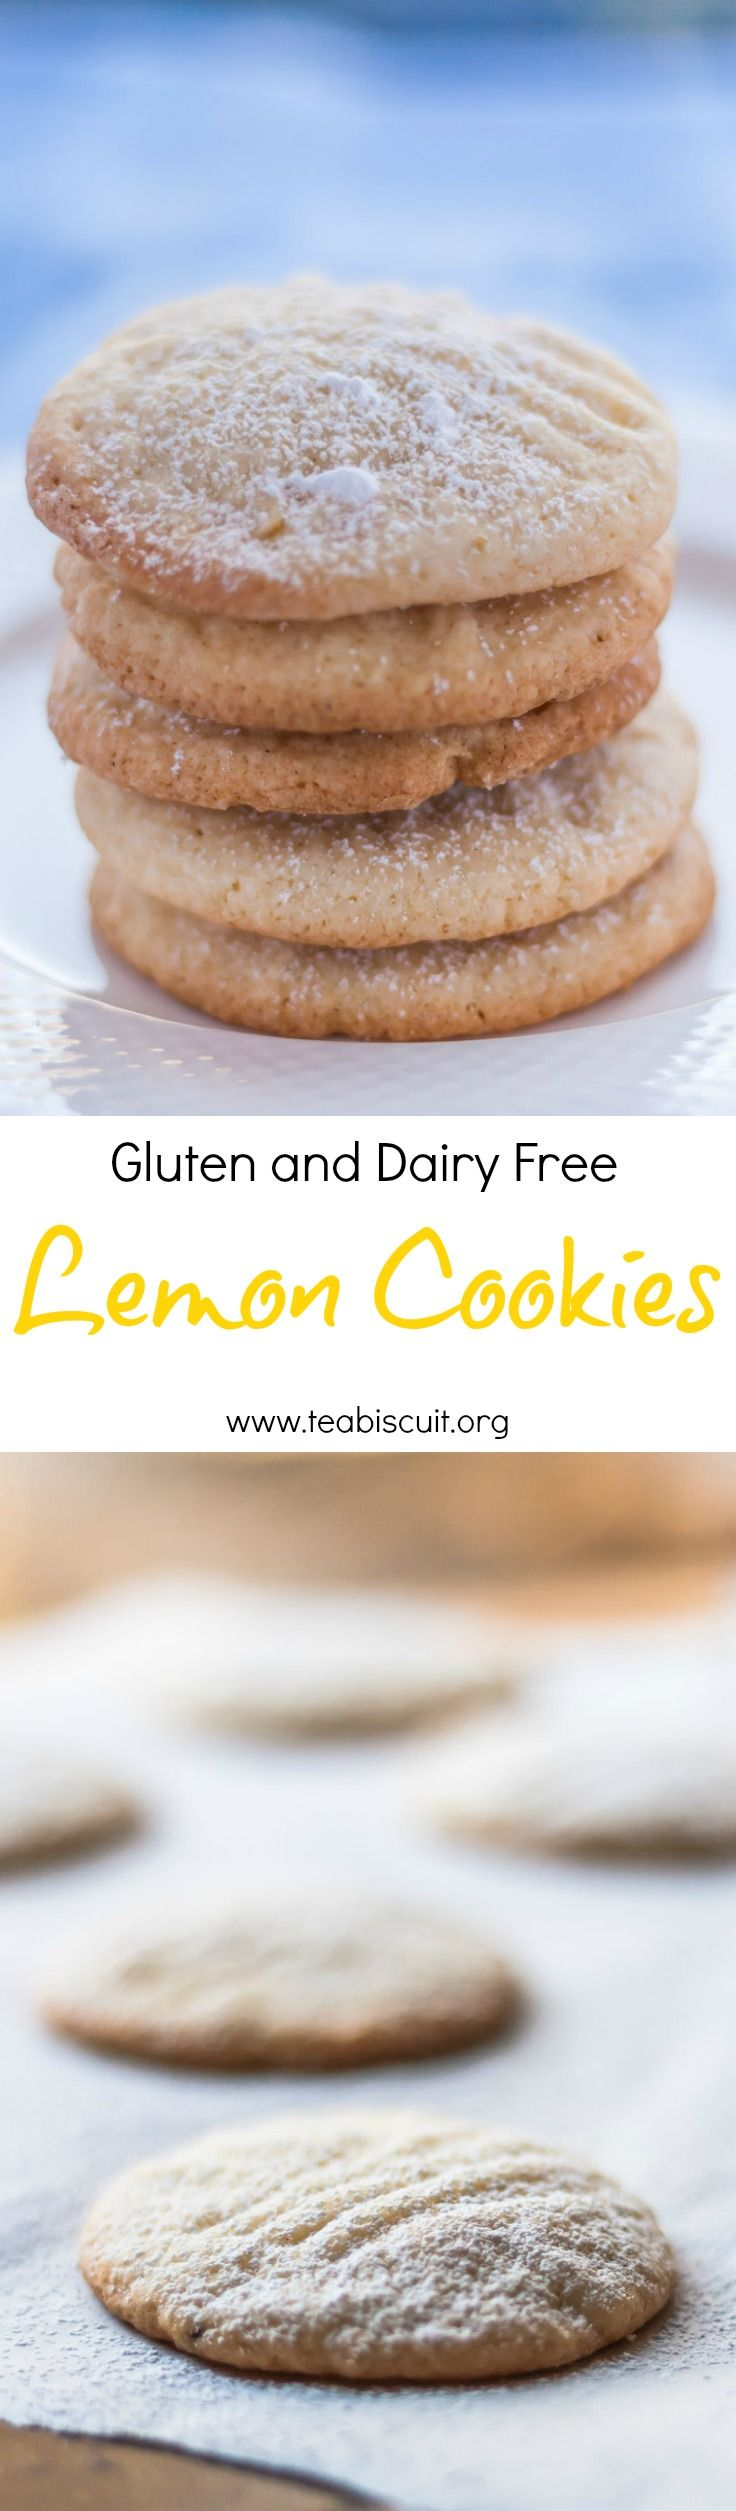 Delicious, easy gluten and dairy free lemon cookies from www.teabiscuit.org